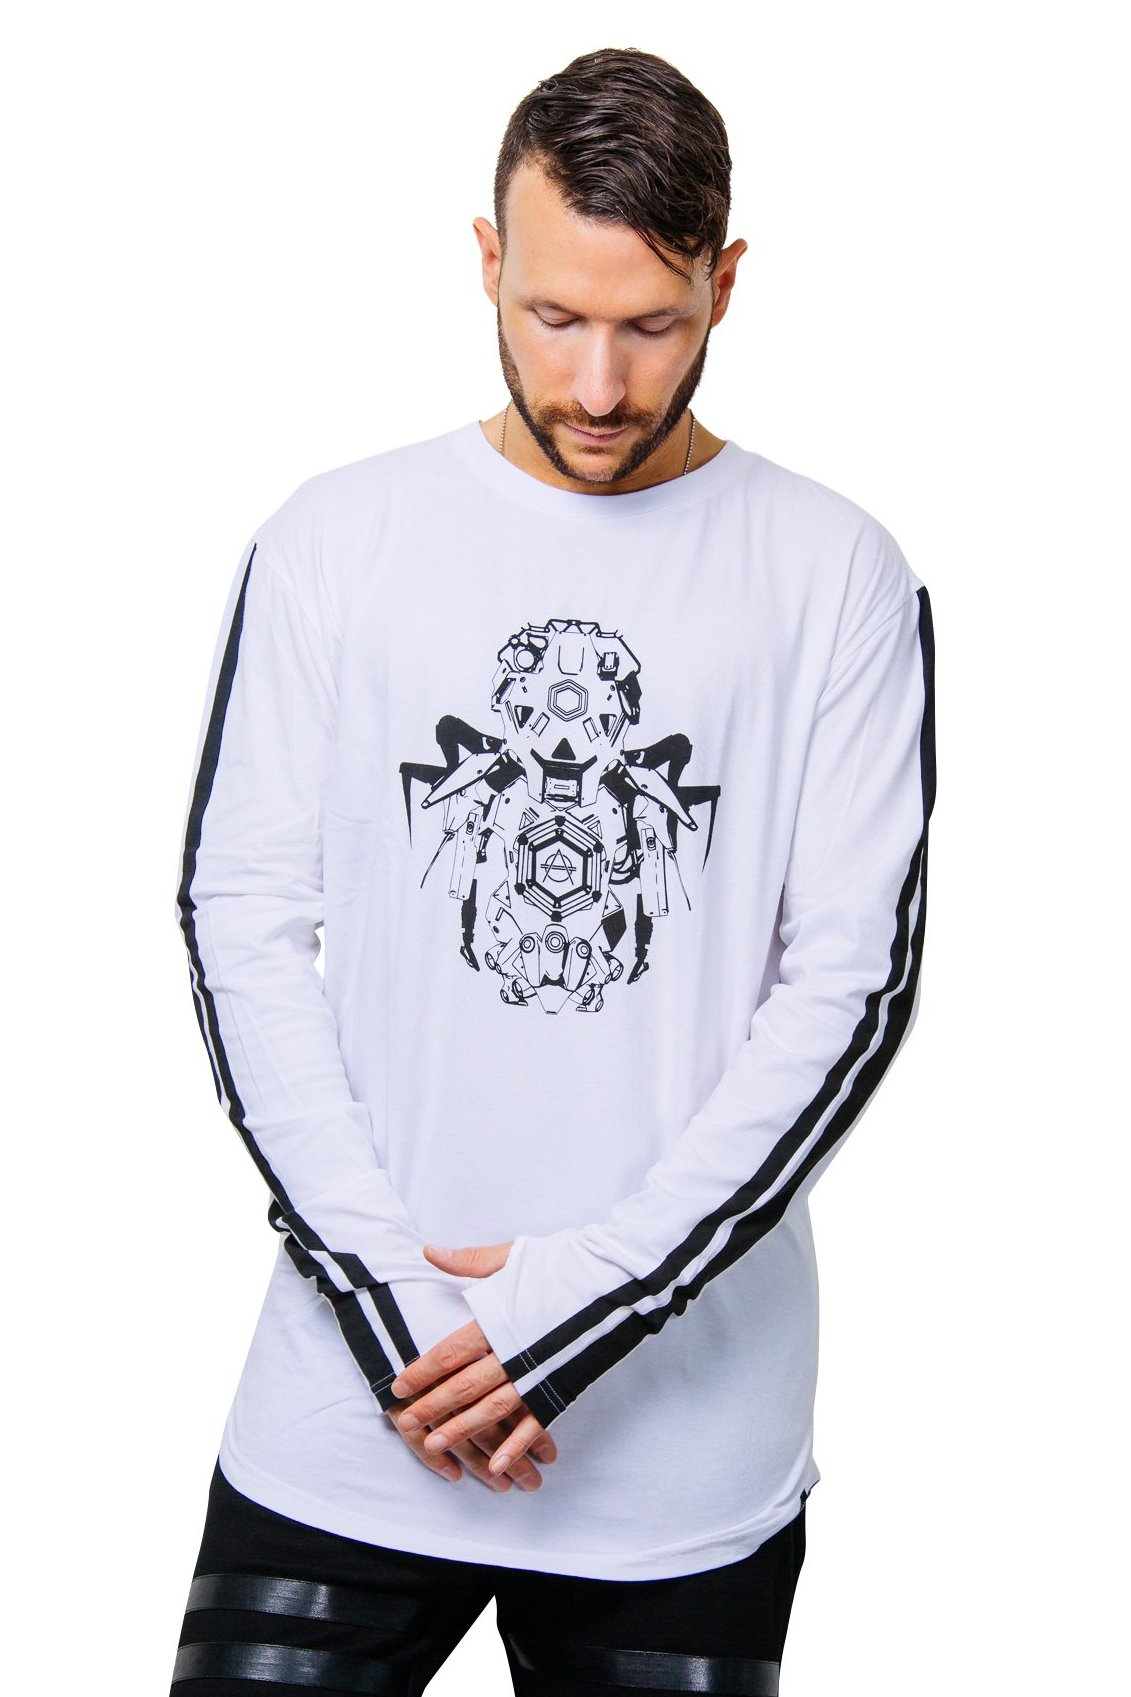 Hexagon Don Diablo robot tee